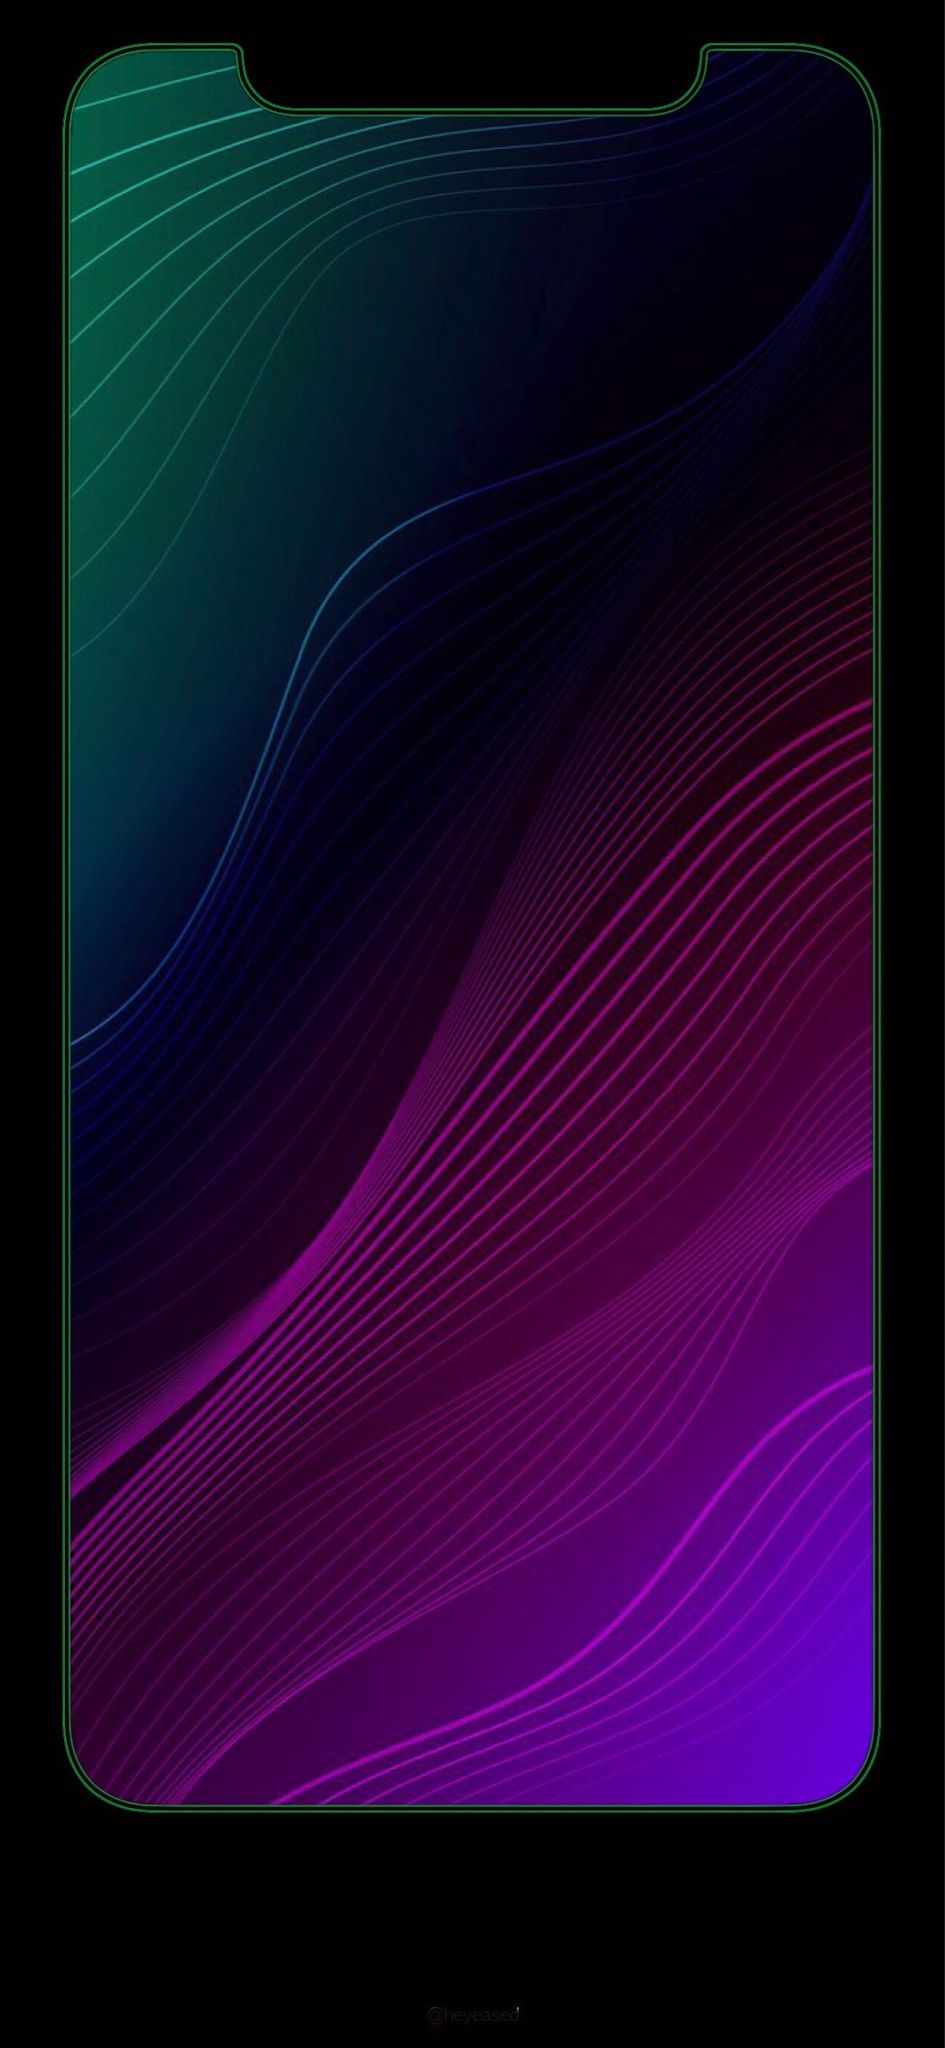 The iPhone X Wallpaper Thread Page 40 iPhone, iPad